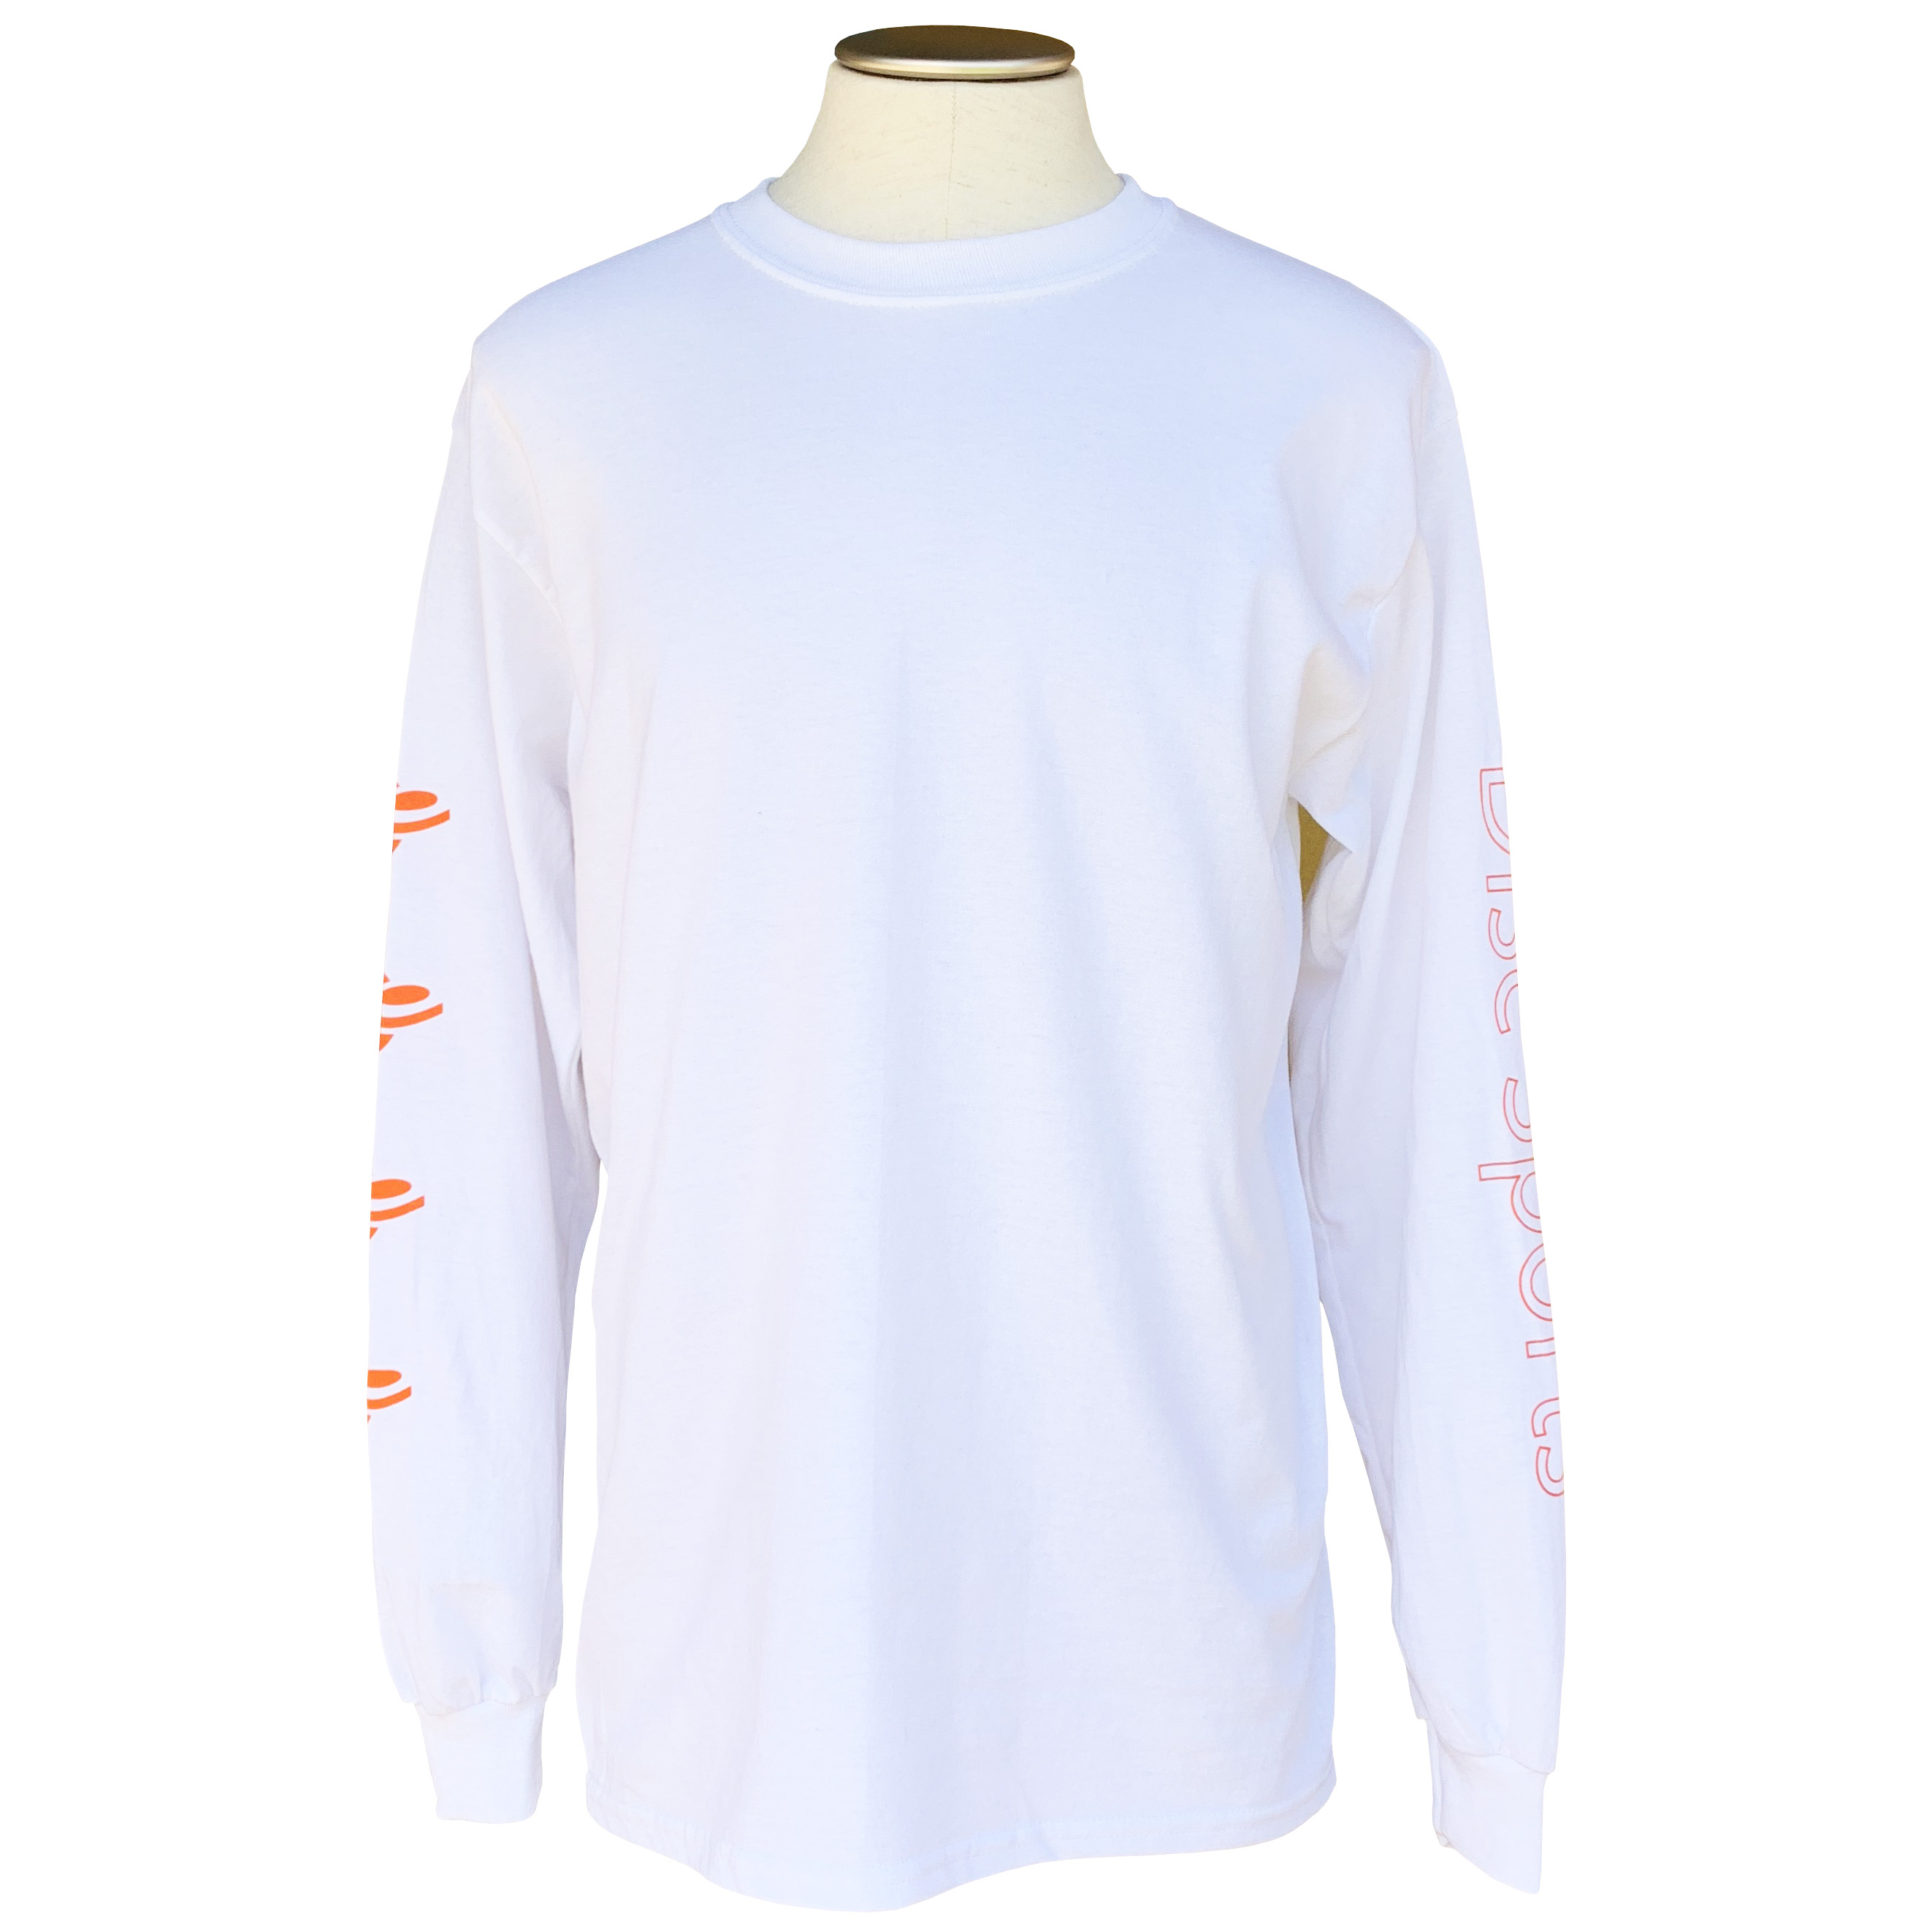 DS ロゴ ロングスリーブ Tシャツ